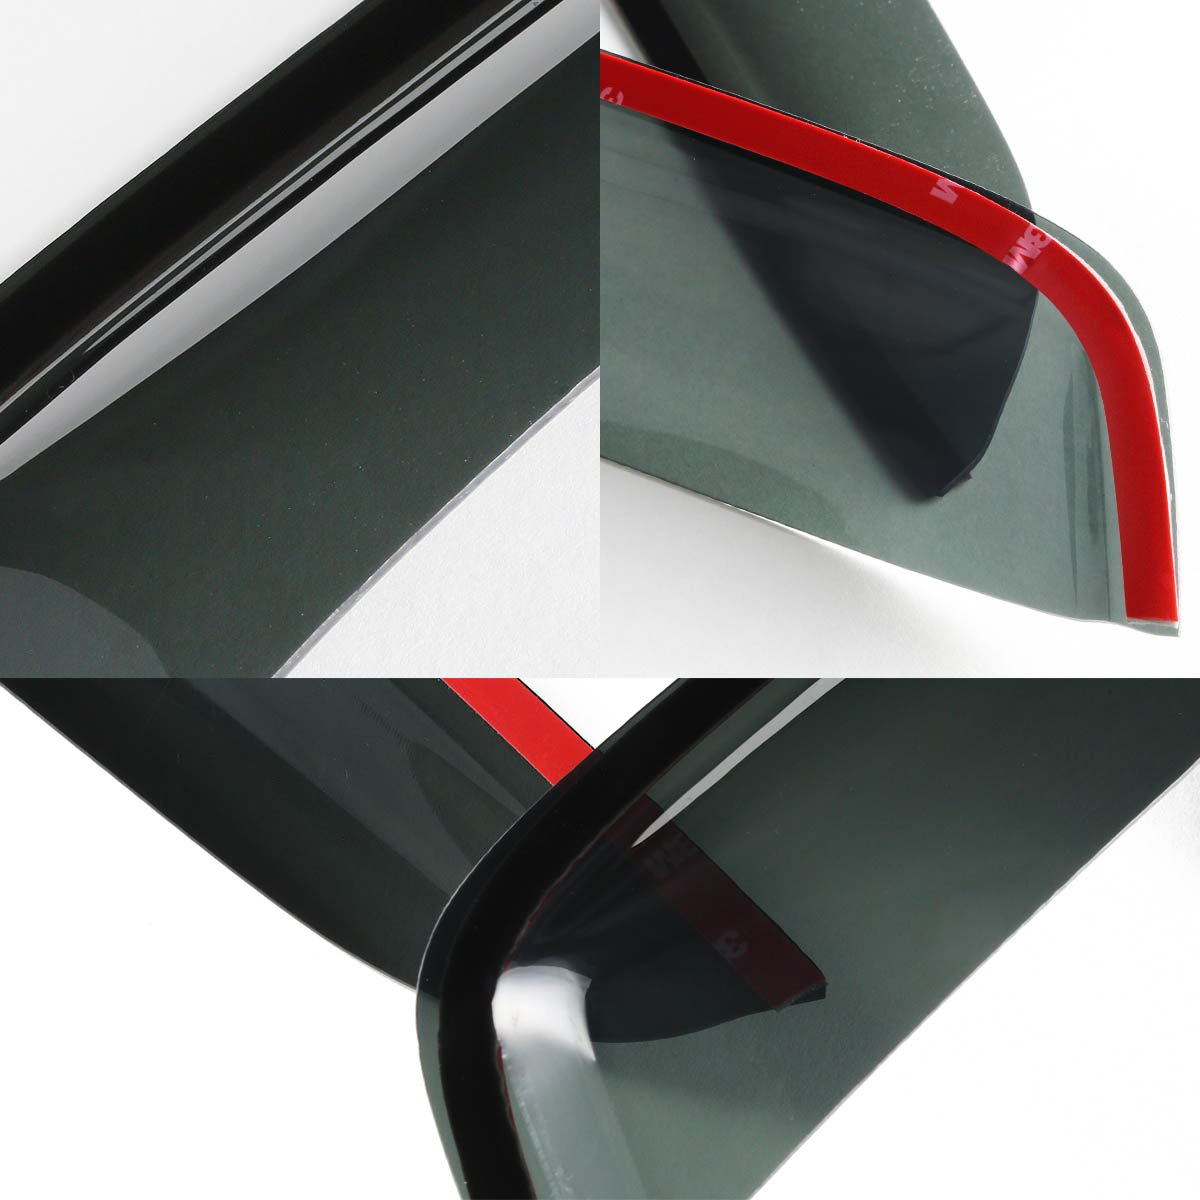 DNA MOTORING WVS-T2-0183 Window Vent Visor Deflector Rain Guard 4pcs, Dark Smoke